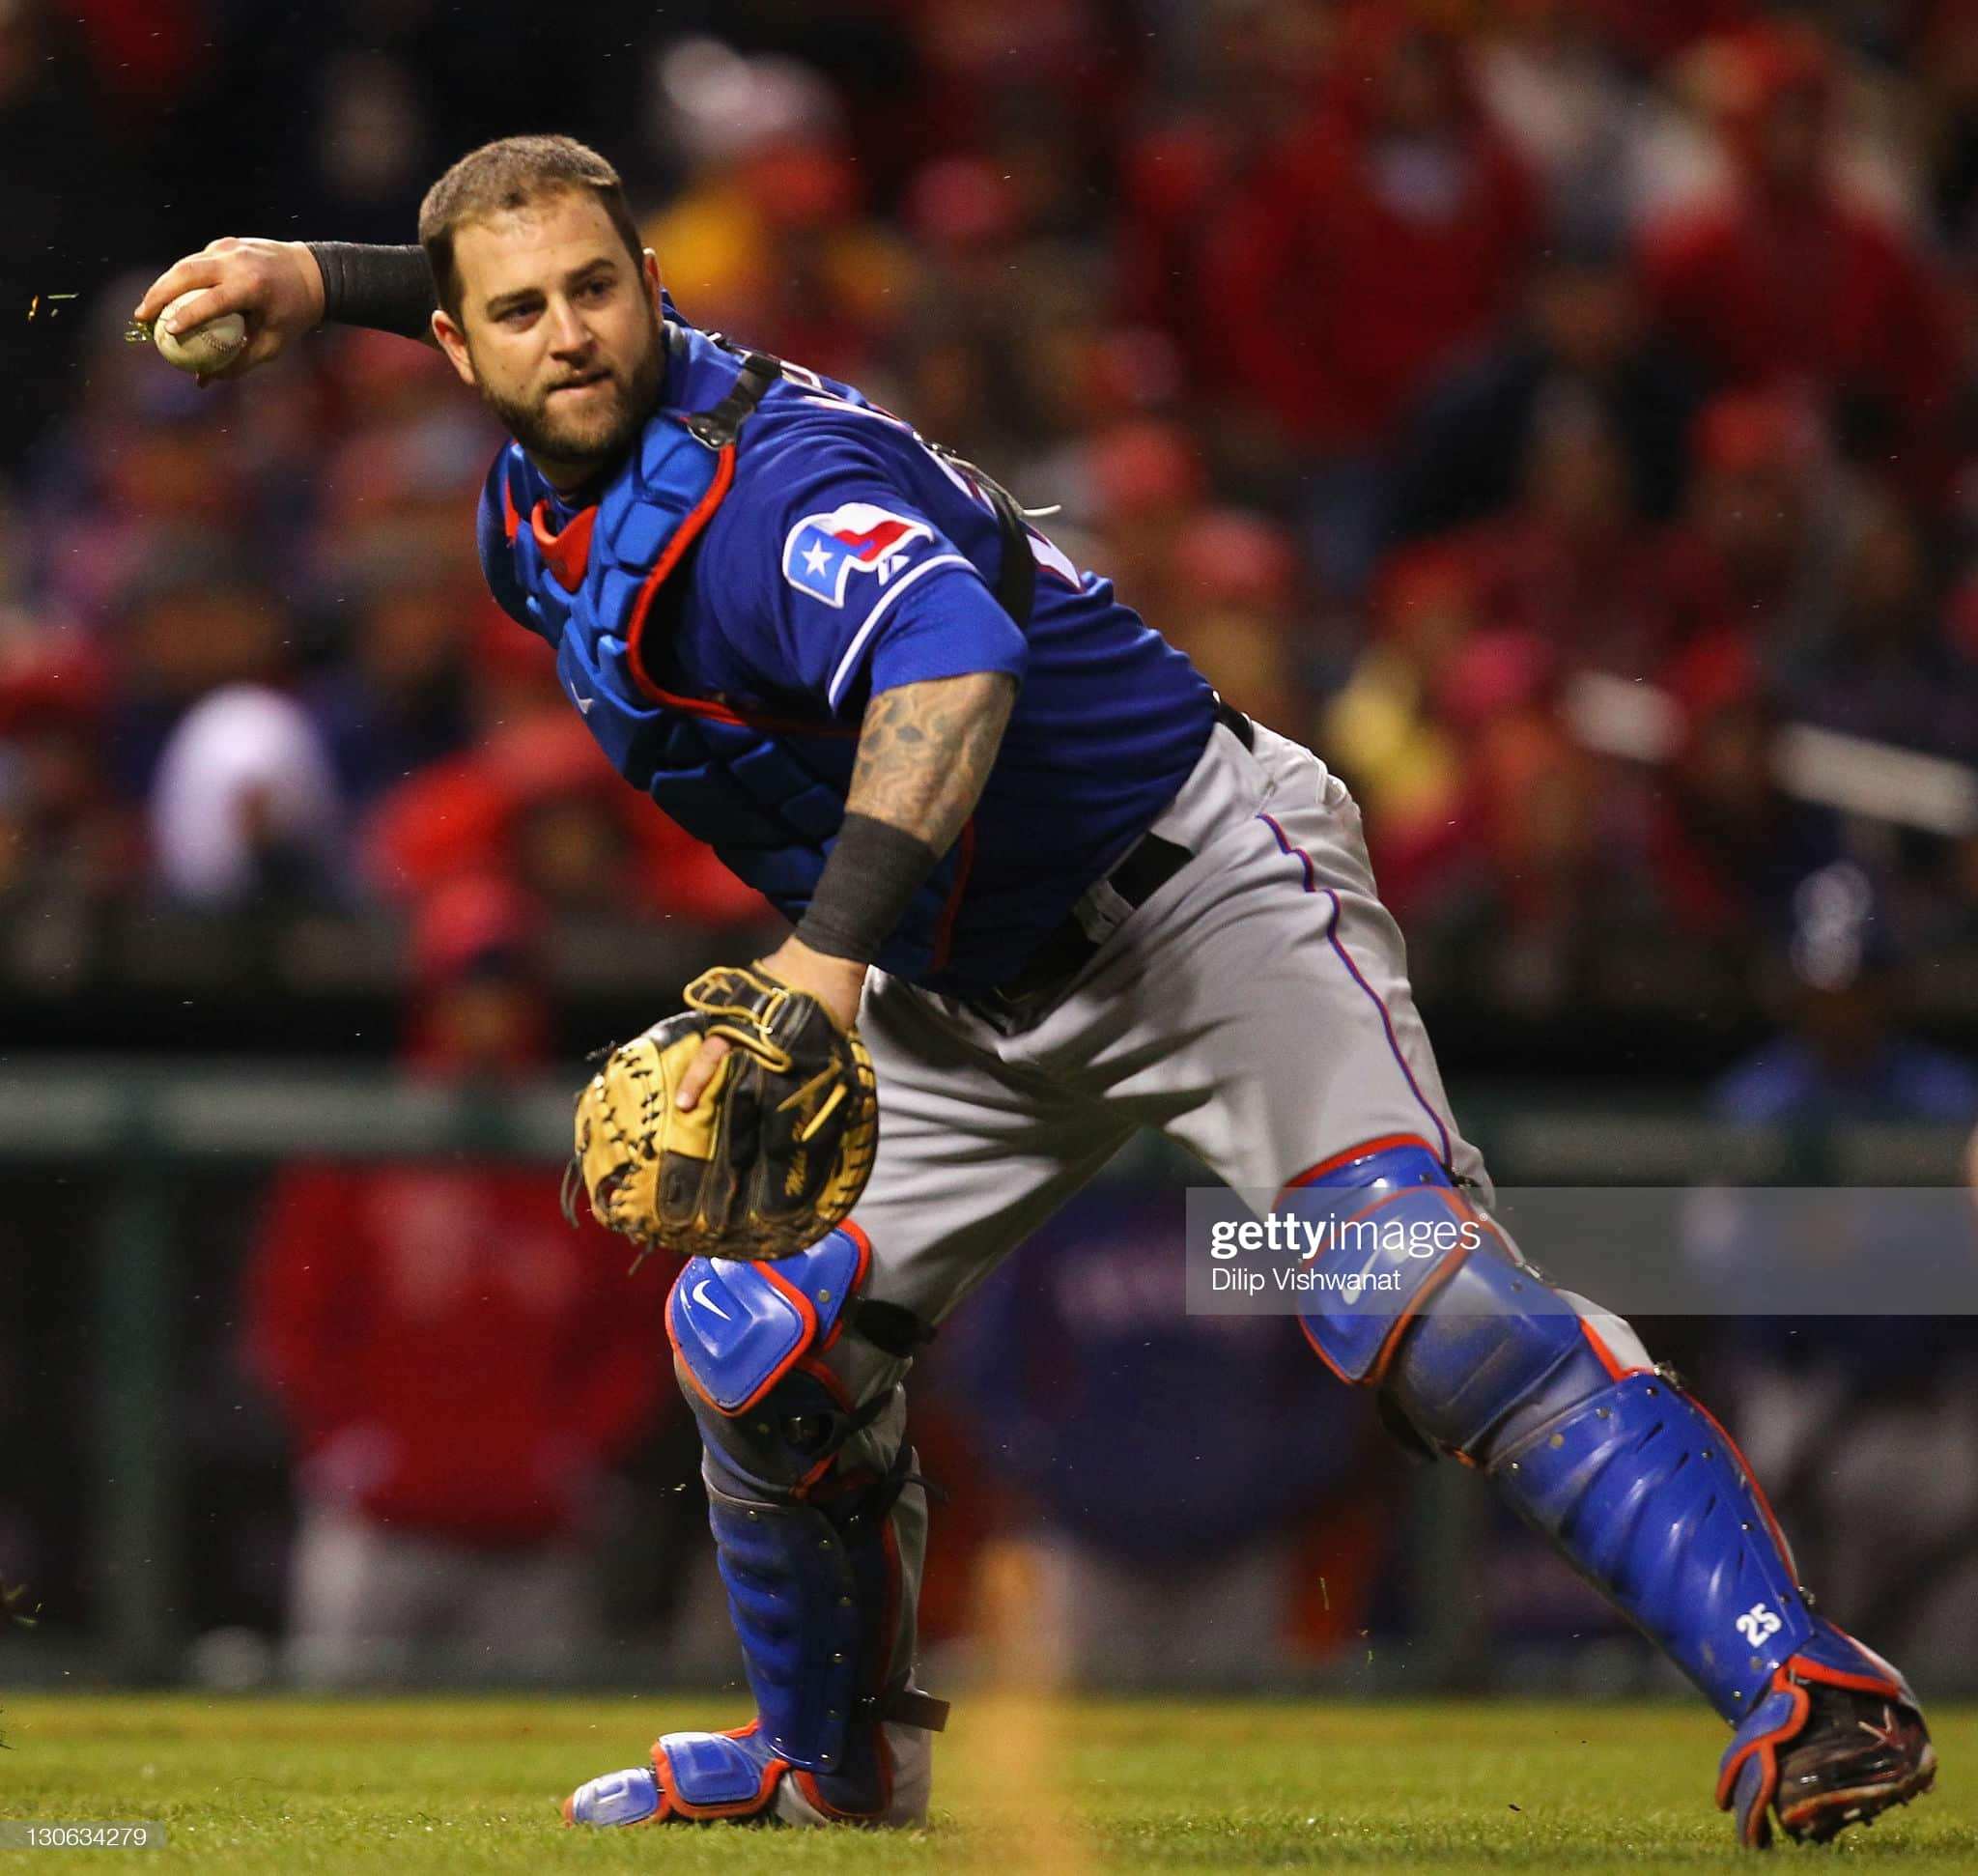 Rangers catcher Mike Napoli during the 2011 world series